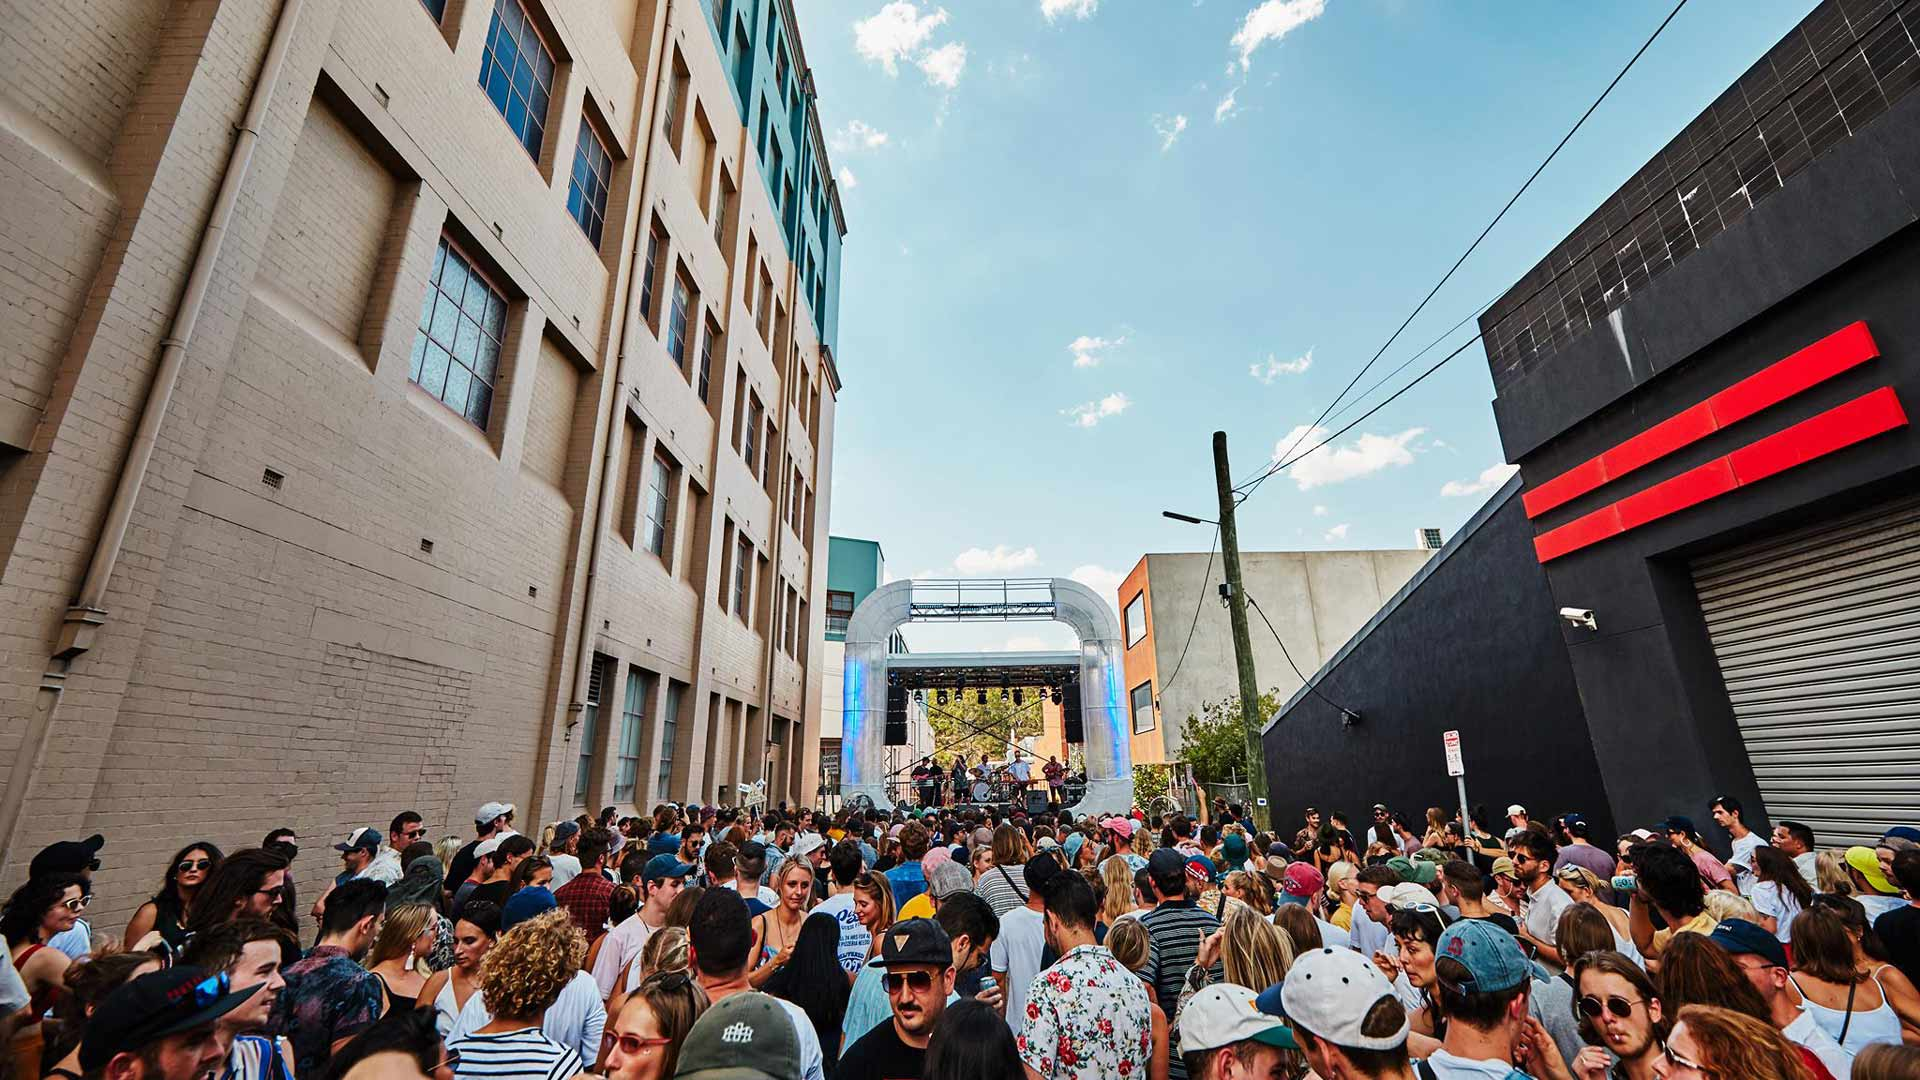 Duke Street Block Party 2020